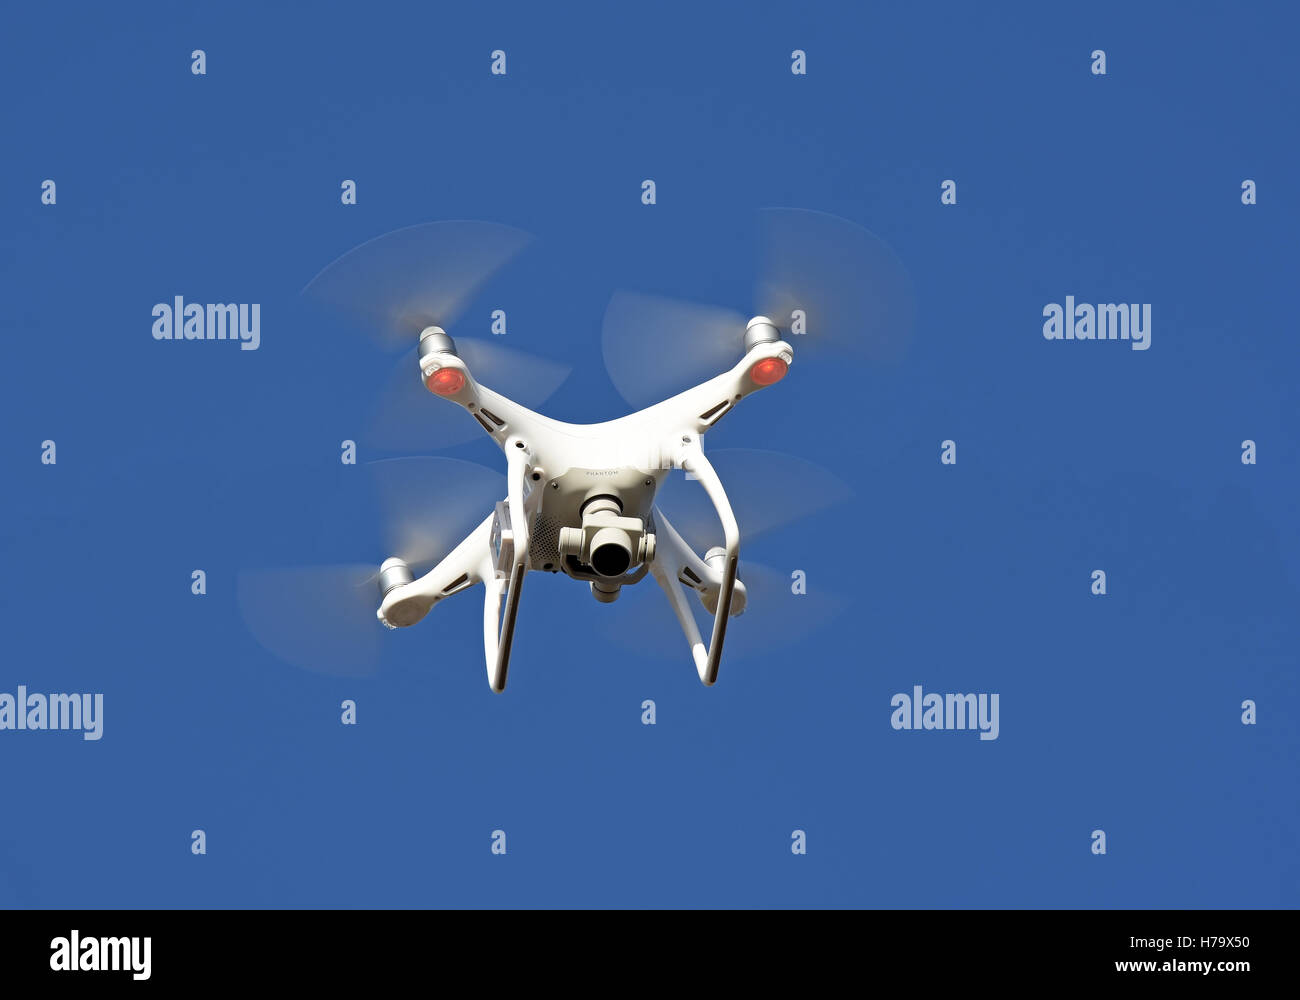 Drone hover in mid air - Stock Image